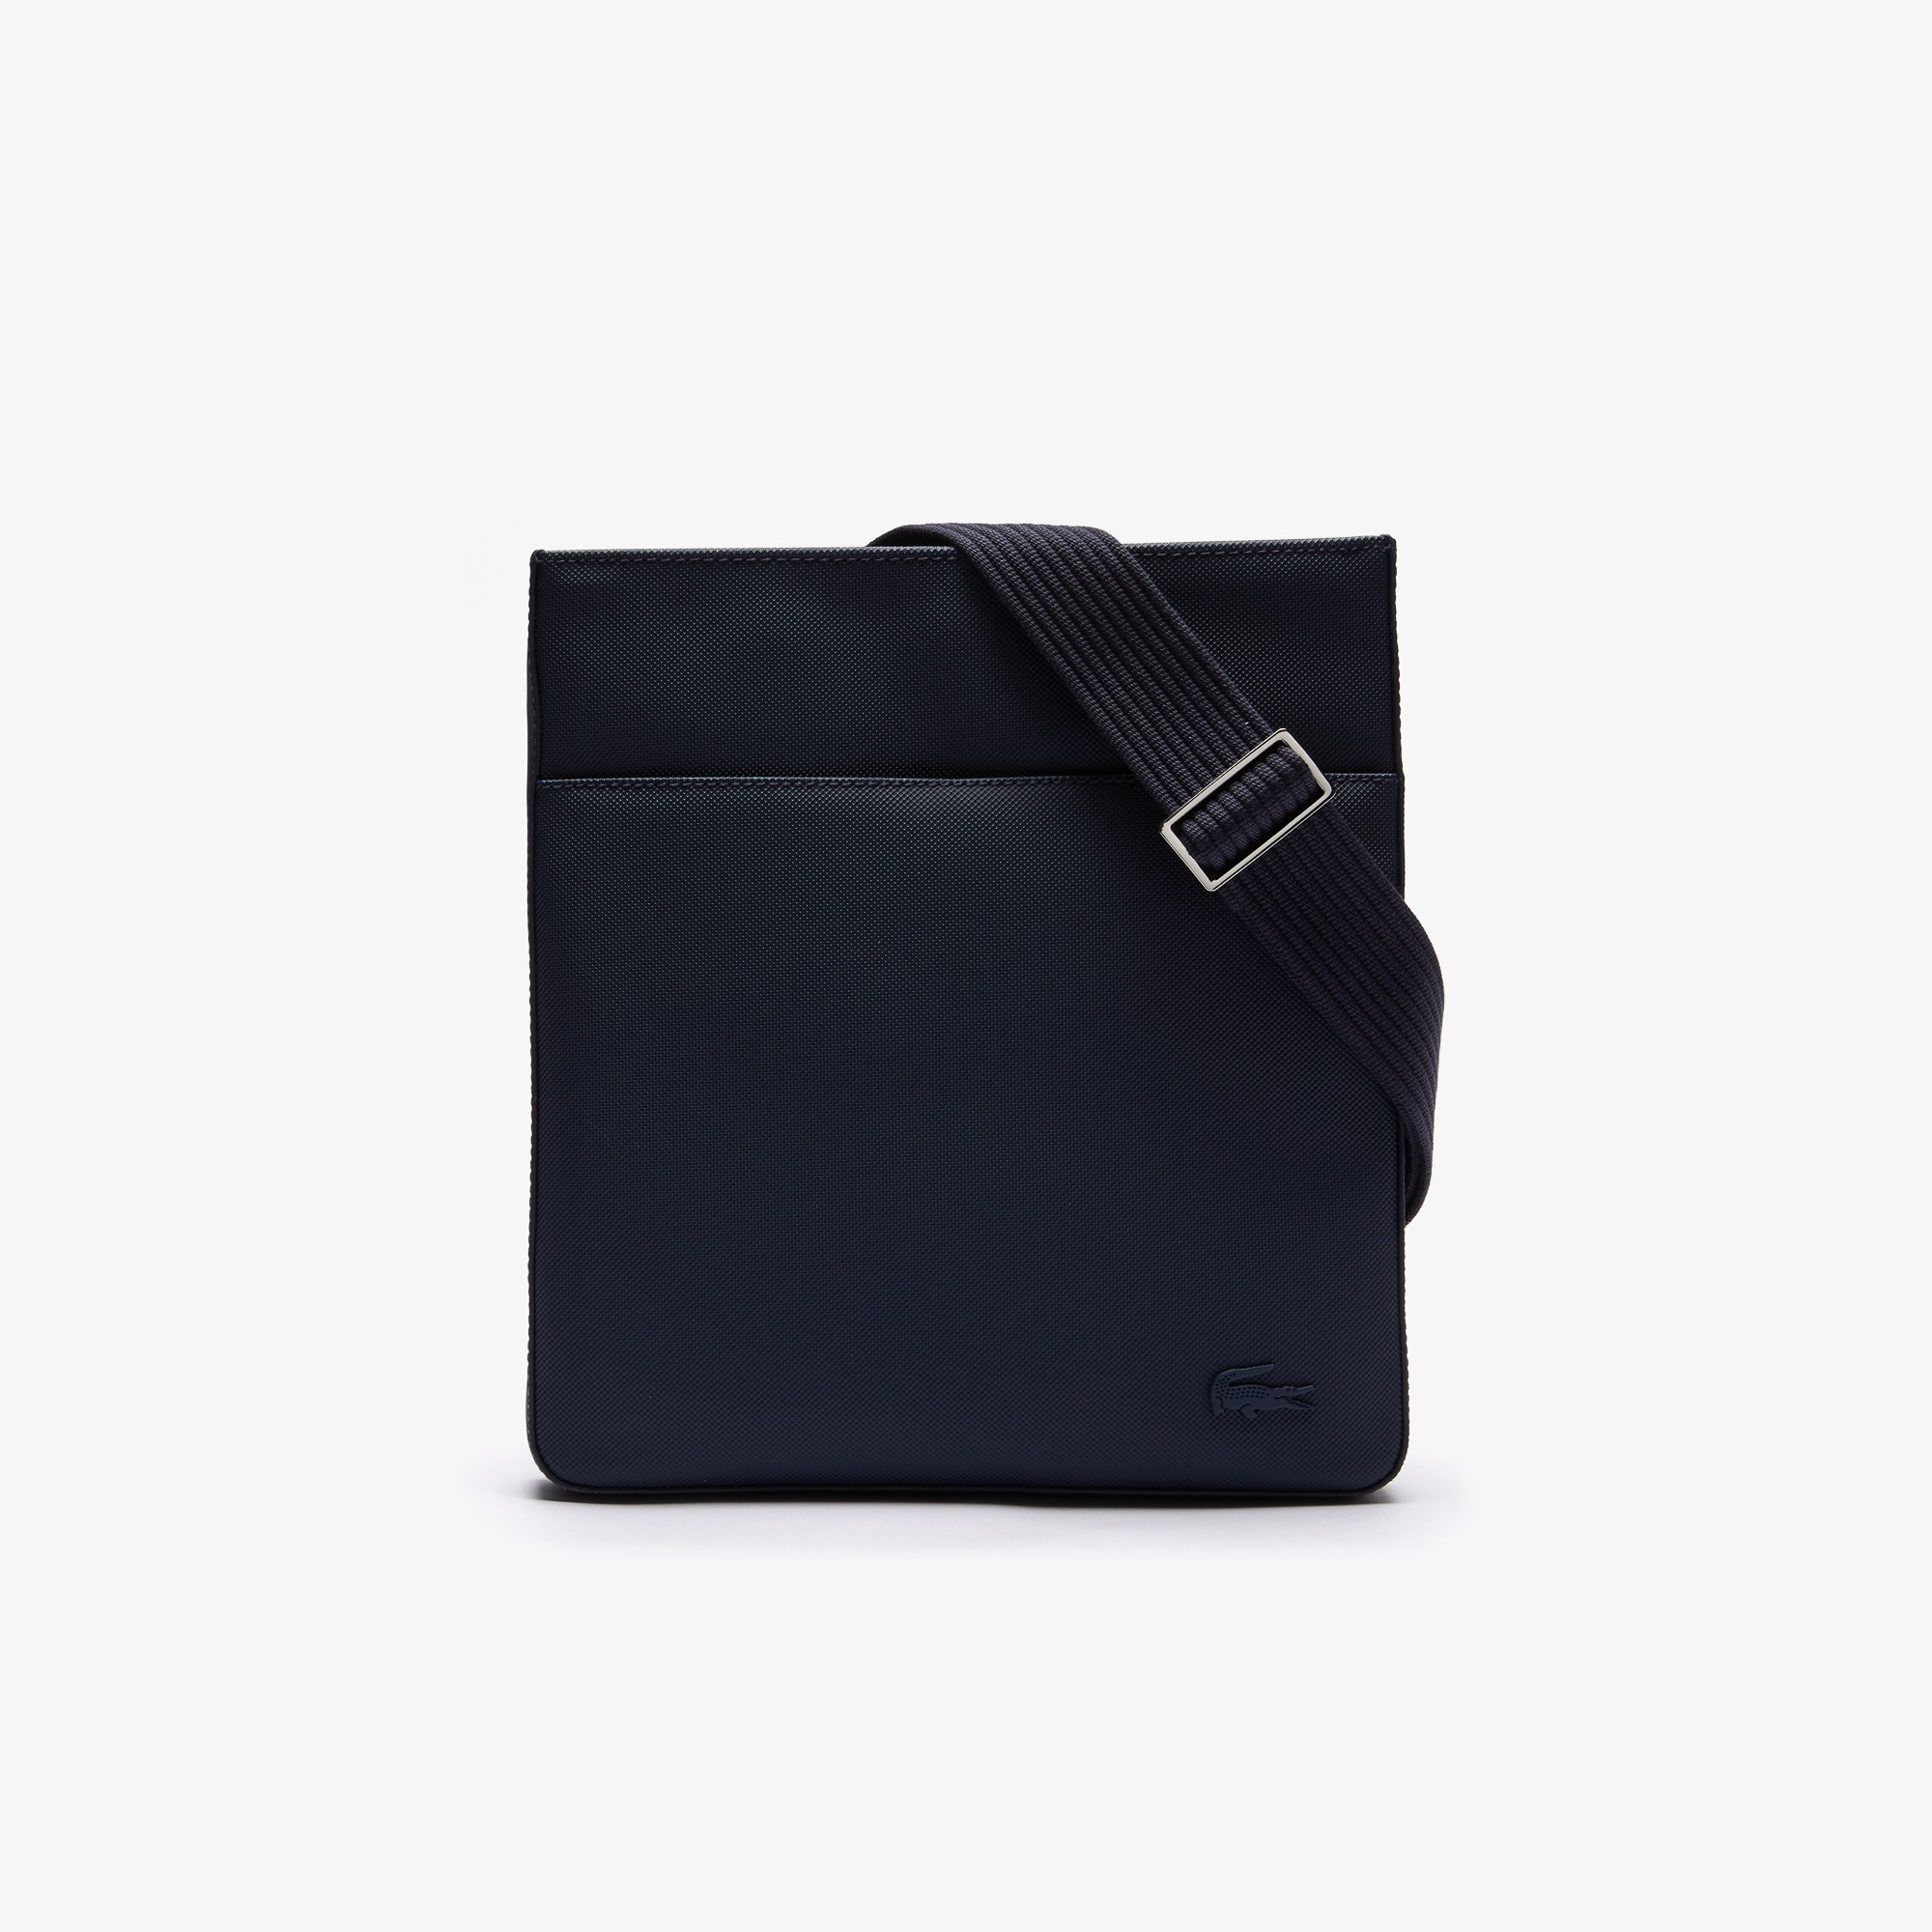 9f00717763 Backpacks & Bags for men | Leather goods | LACOSTE